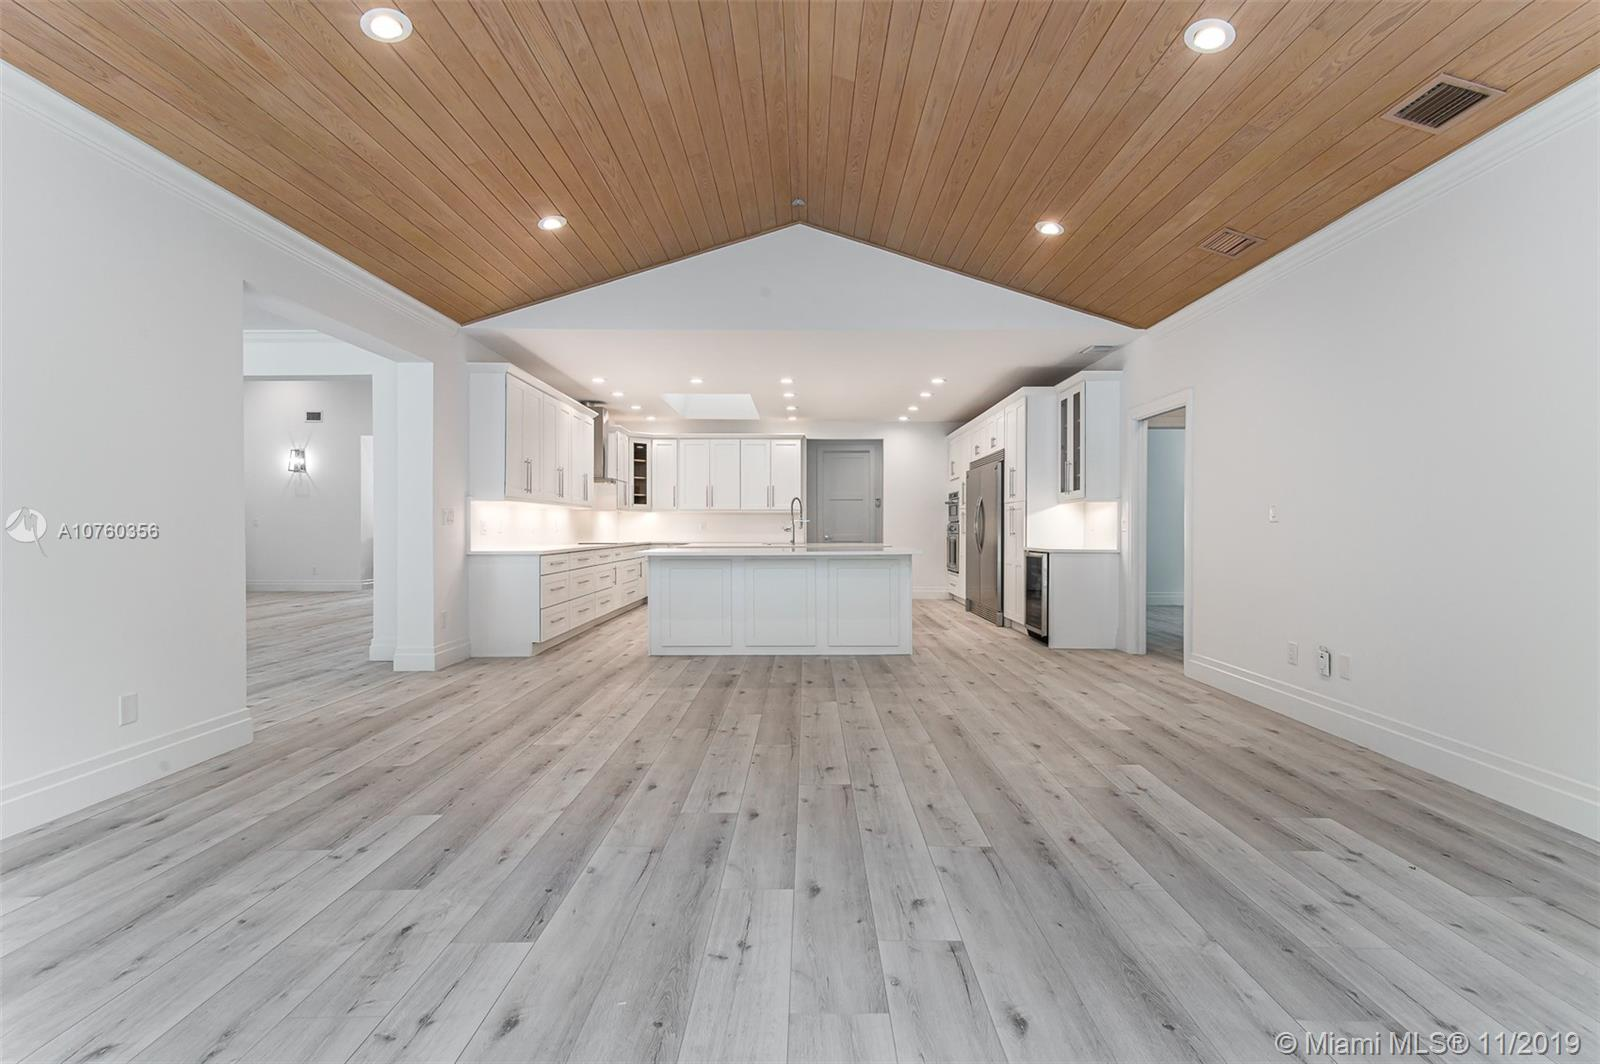 Brand New XXL open chef's kitchen featuring Top of the Line SS appliances, chrome finishes, custom wood shaker cabinets, quartz countertops and back splash, endless seating and storage! Open Floor plan - adjacent to the XXL Family Room & Overlooking the scenic Pool/backyard!